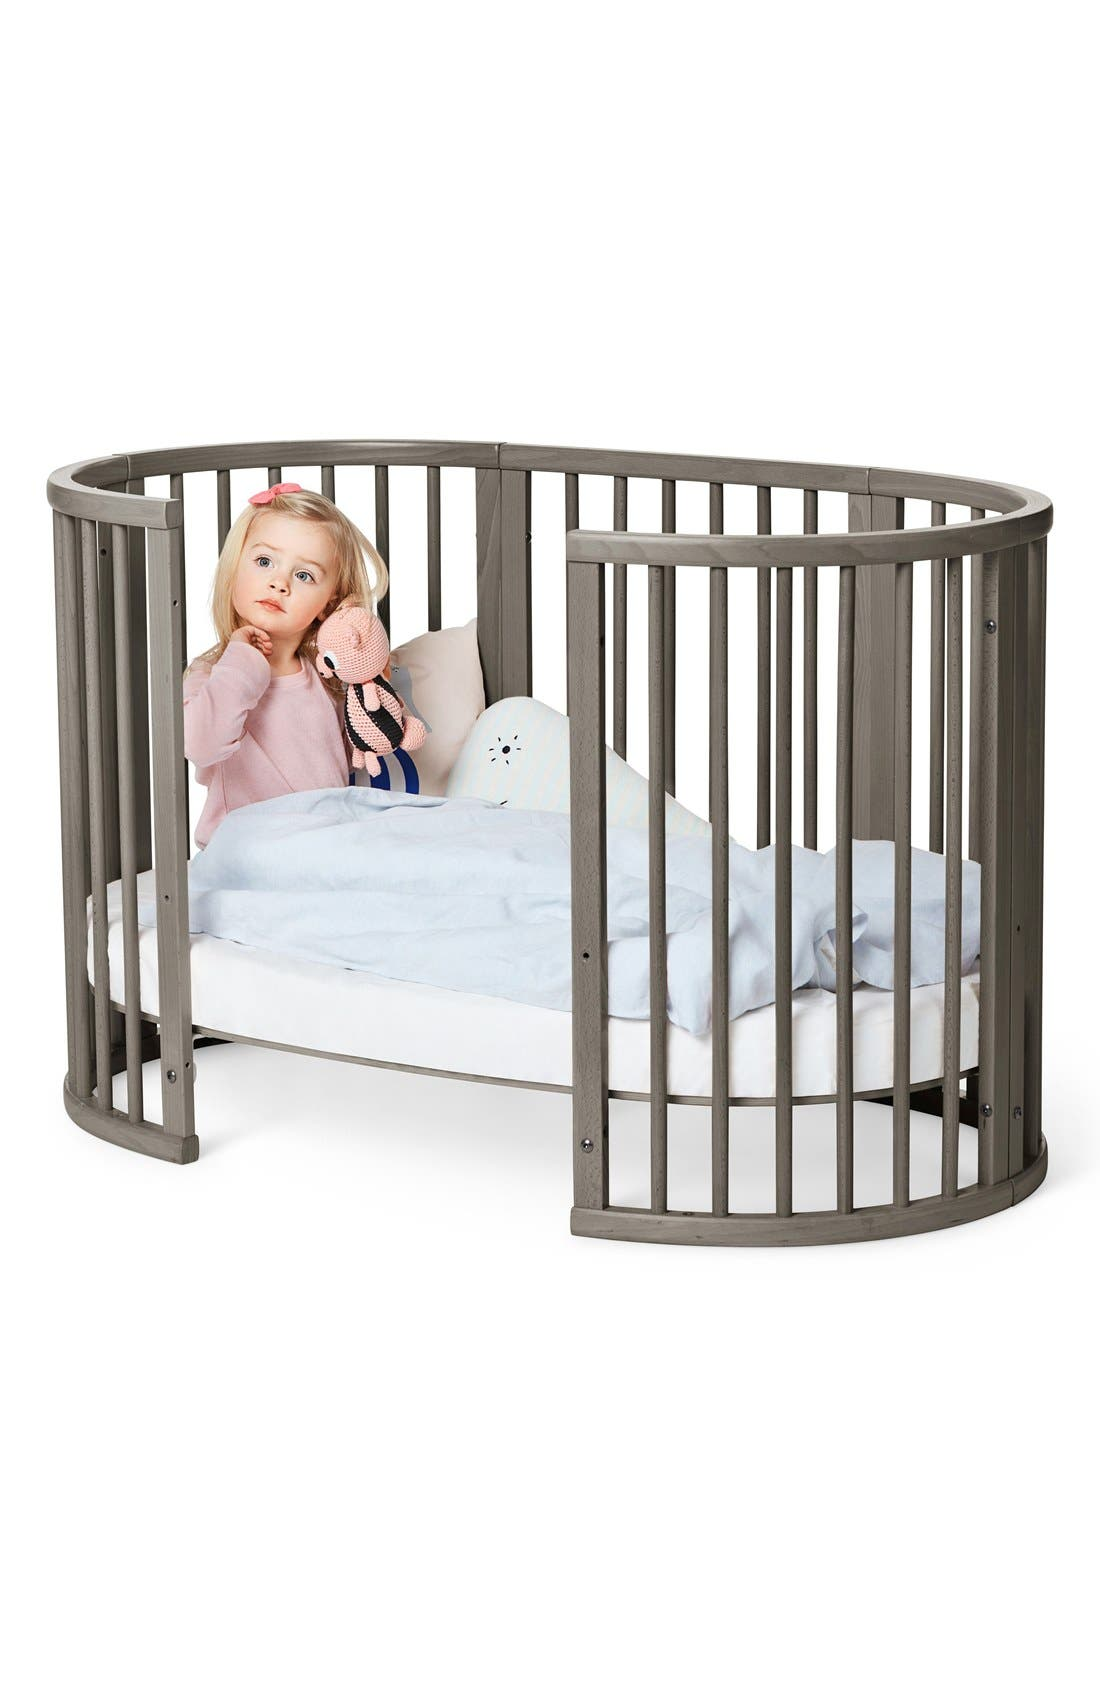 Convertible Sleepi Crib & Toddler Bed,                             Alternate thumbnail 2, color,                             Hazy Grey